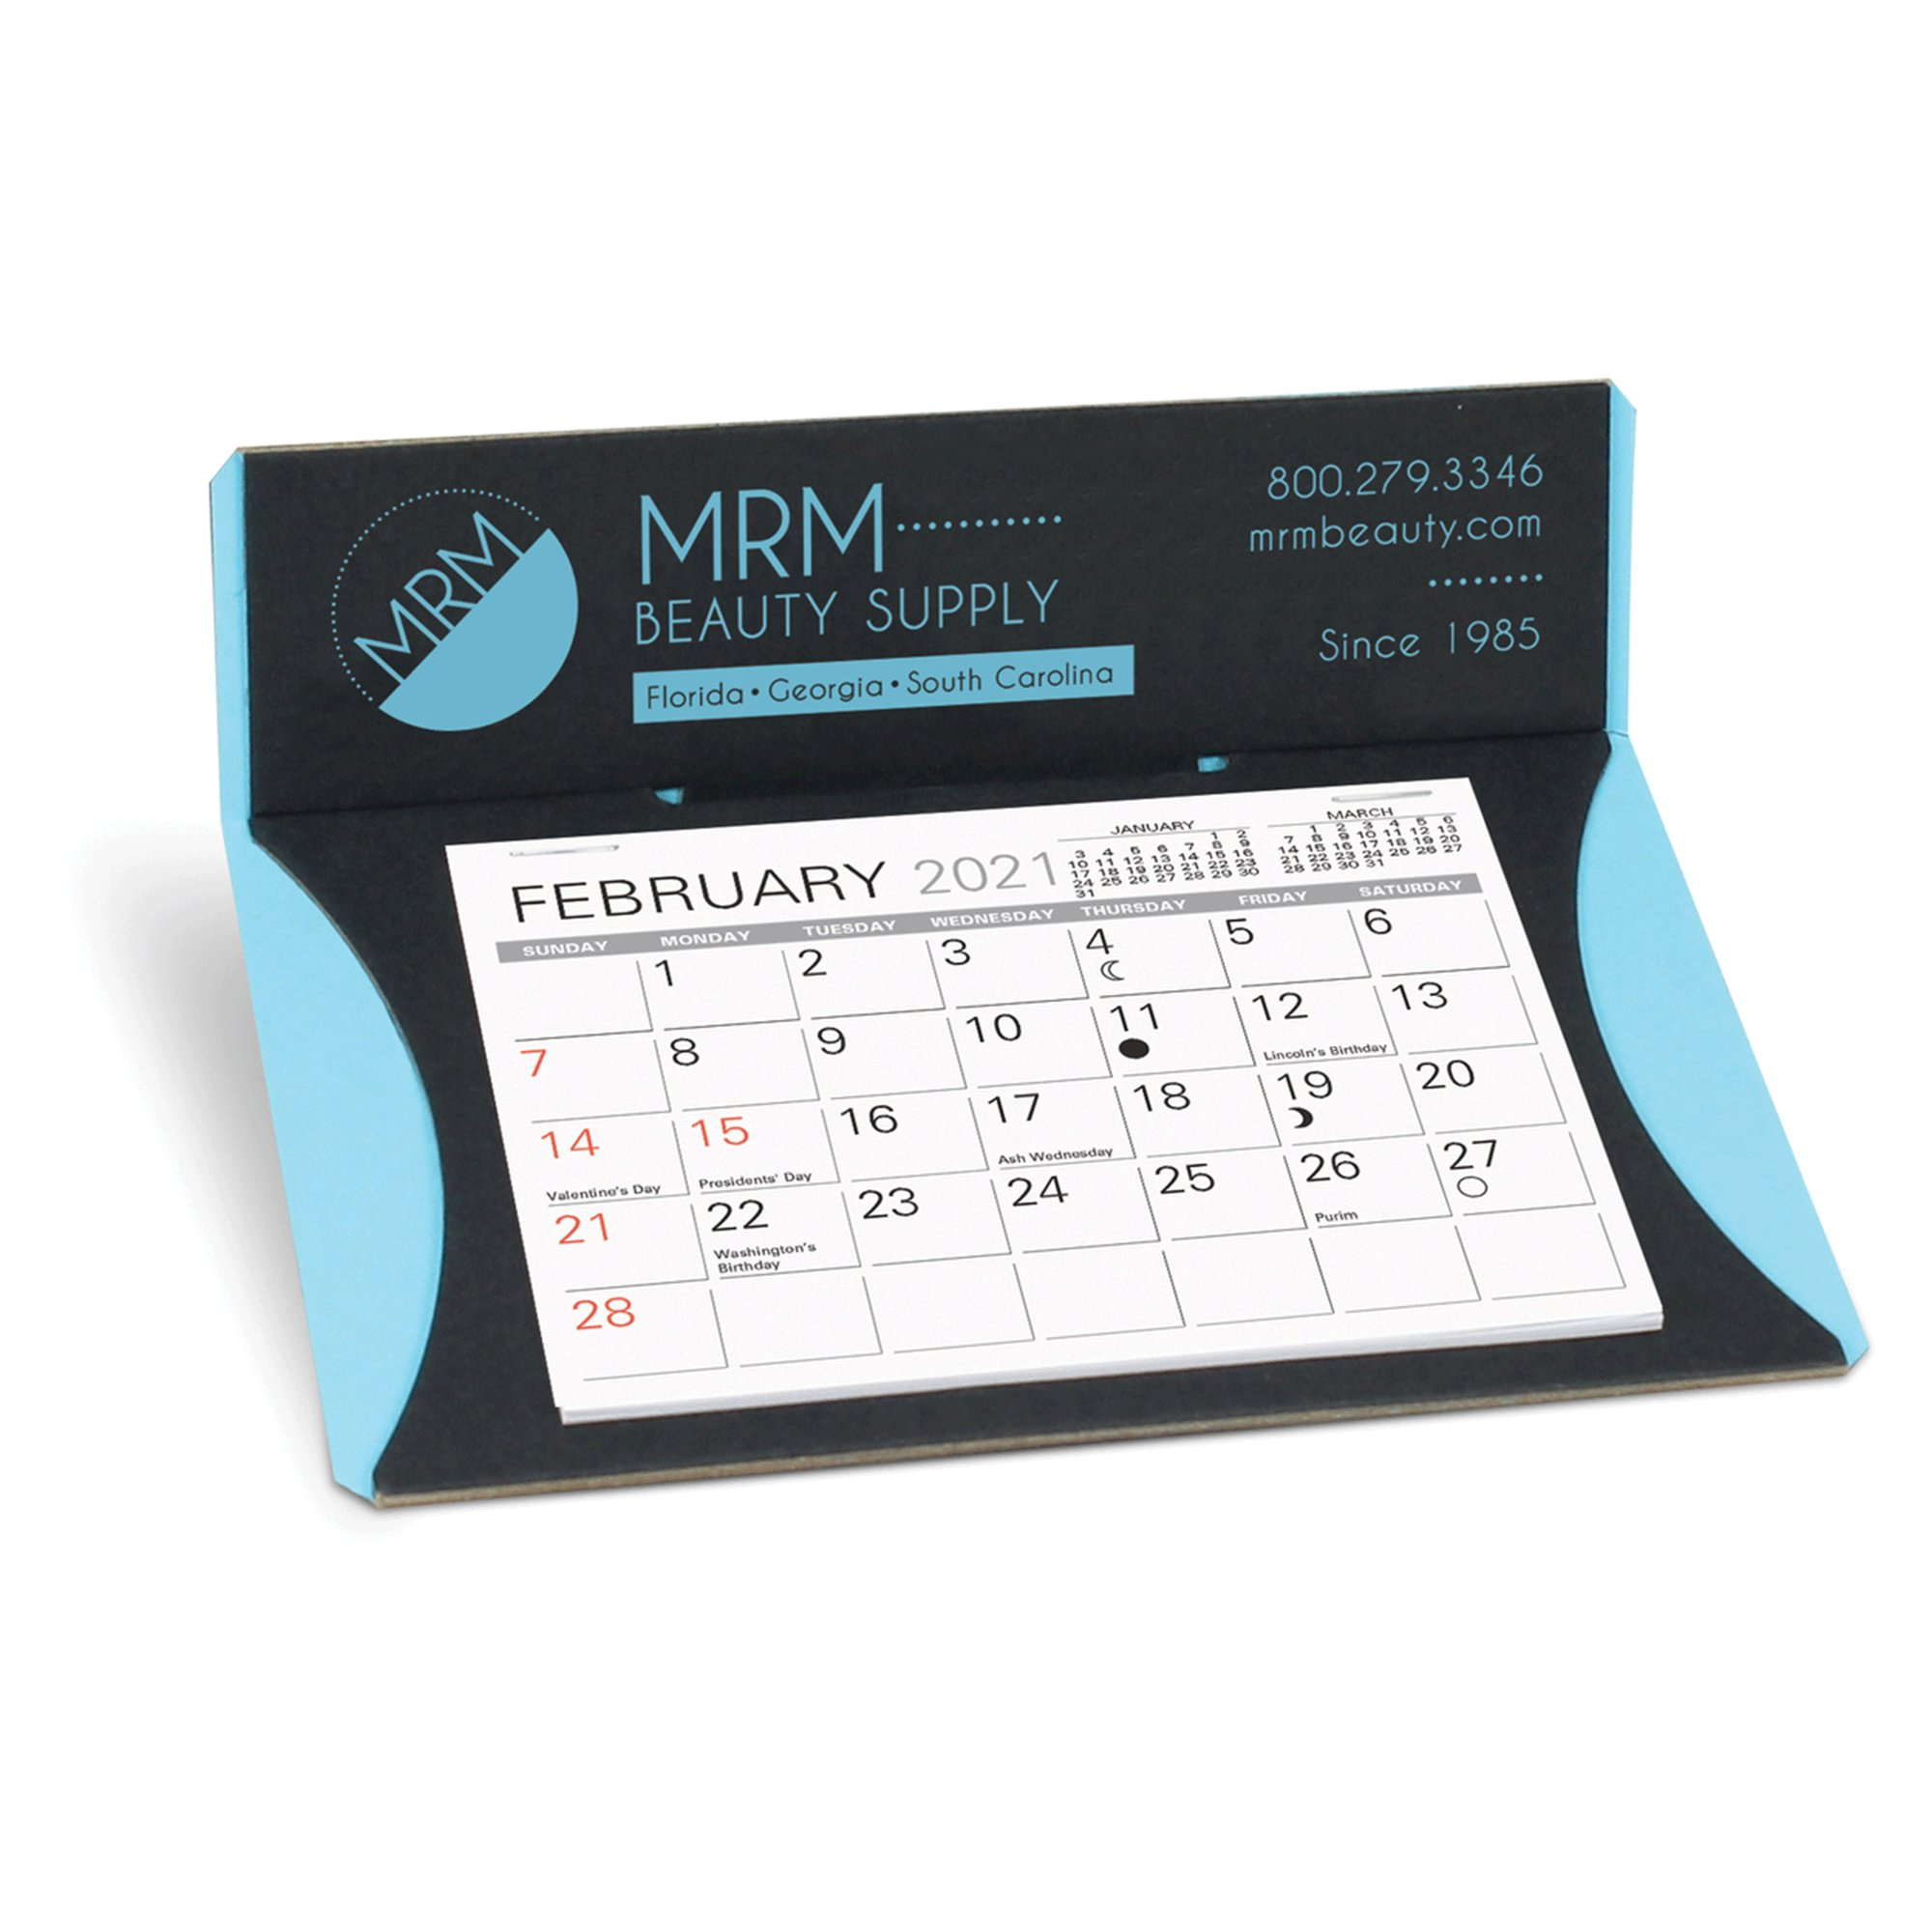 Get personalised calendars printed with your company logo and branding making them an ideal gift for customers. Wall calendars, desk calendars and more. Buy online.